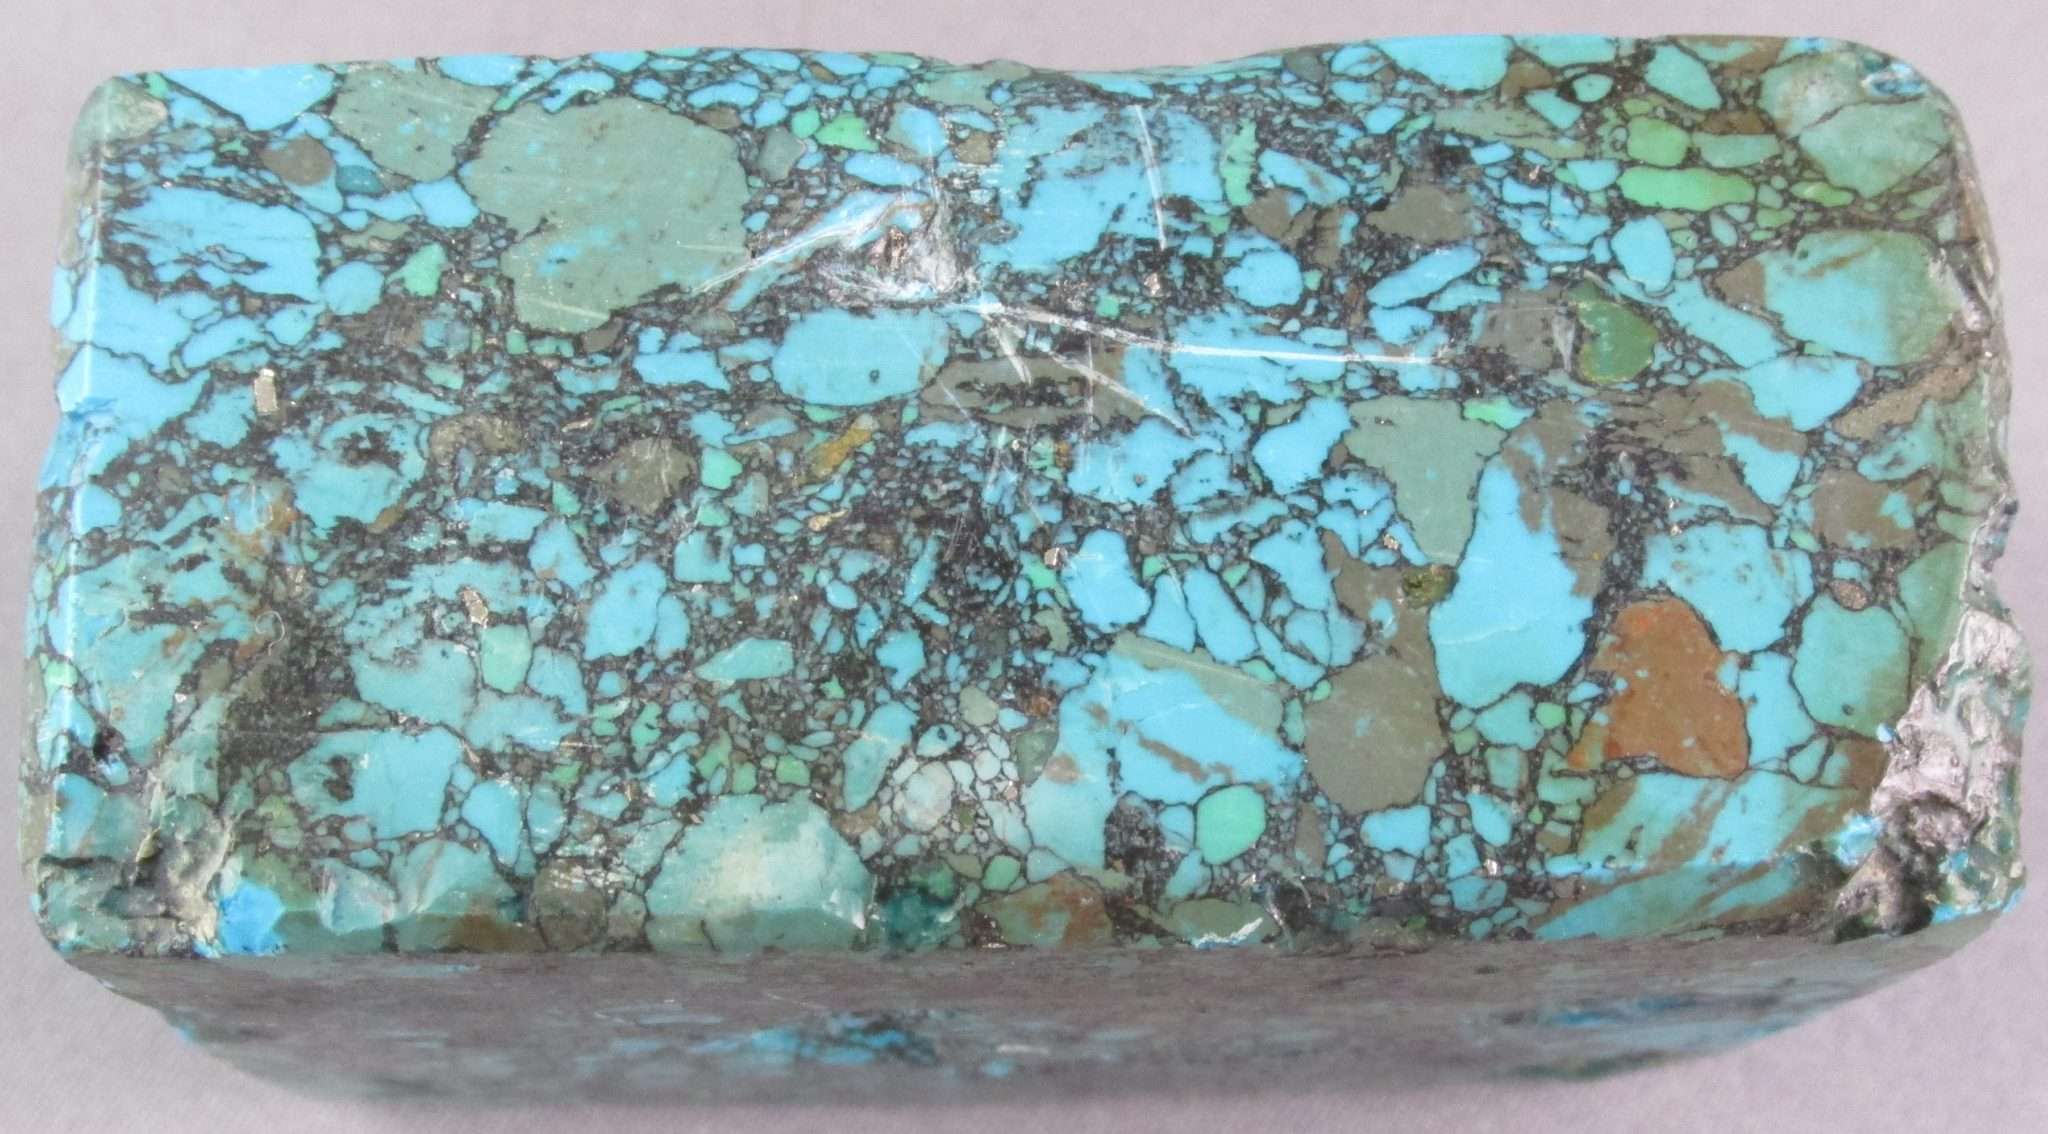 Block Turquoise, made with resin, contains no turquoise